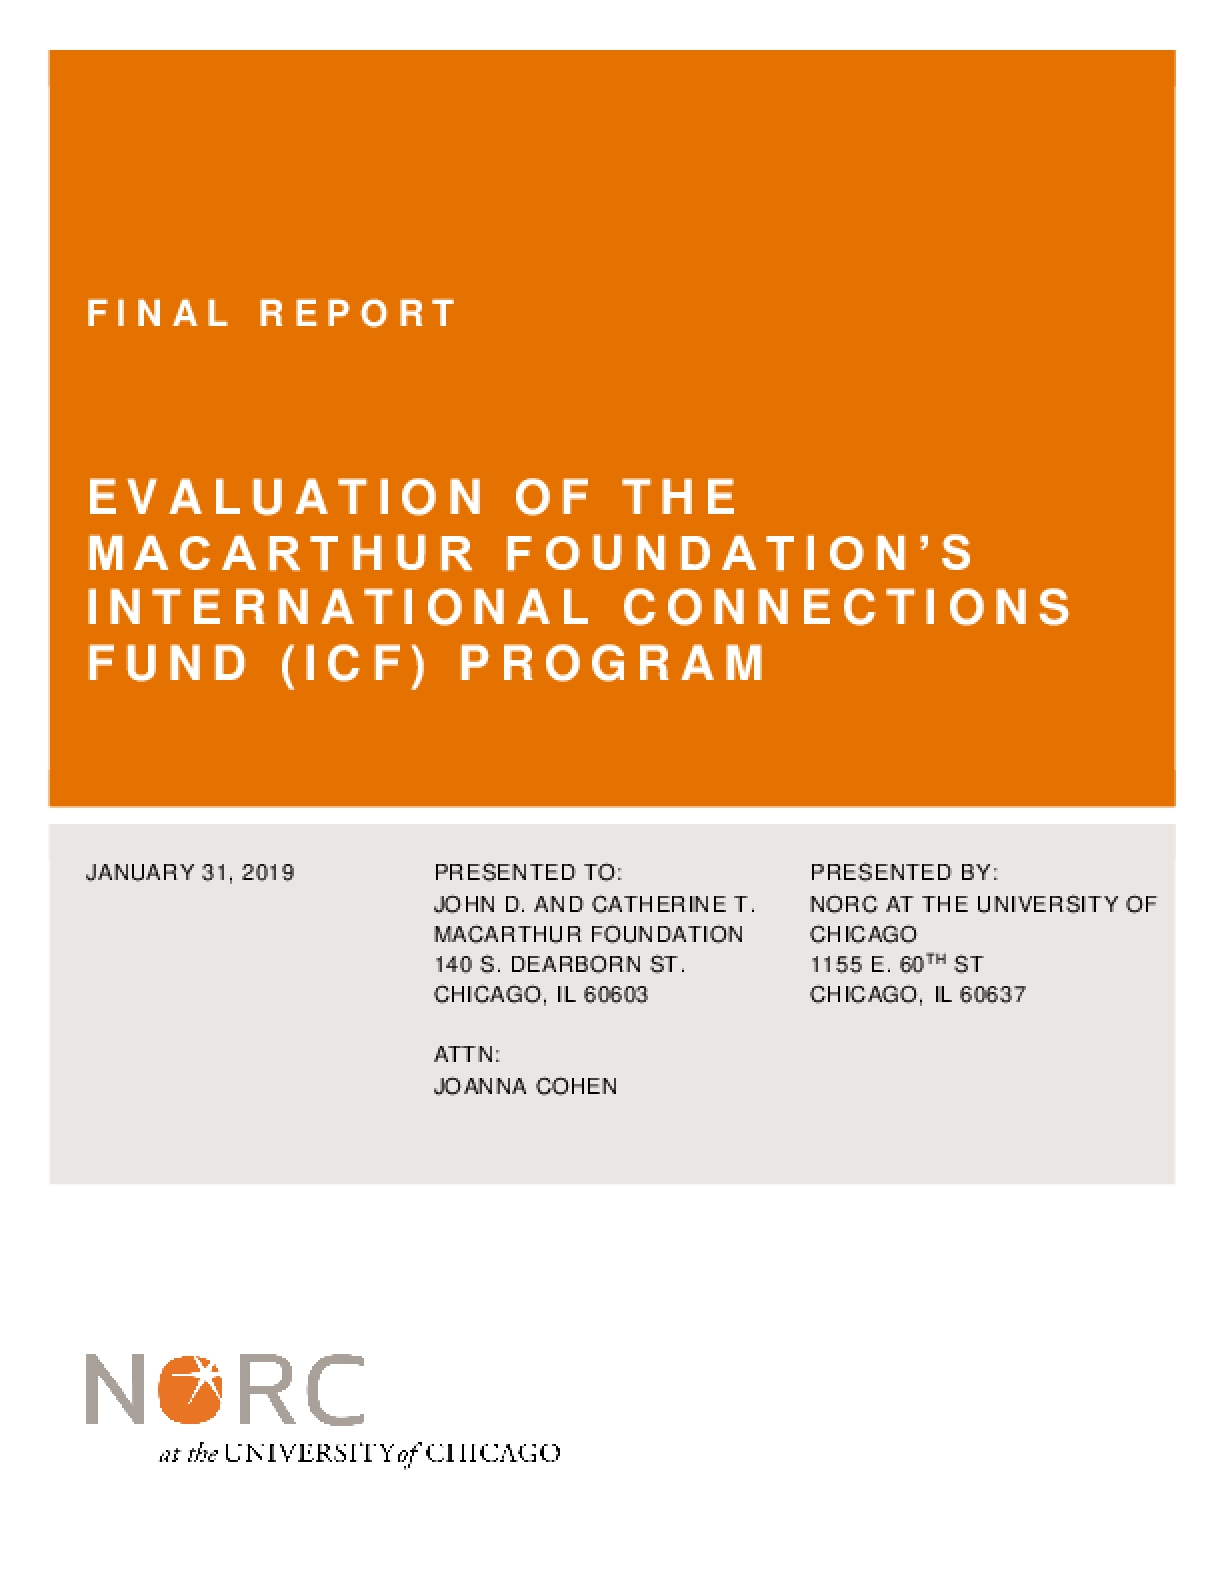 Evaluation of the MacArthur Foundation's International Connections Fund (ICF) Program